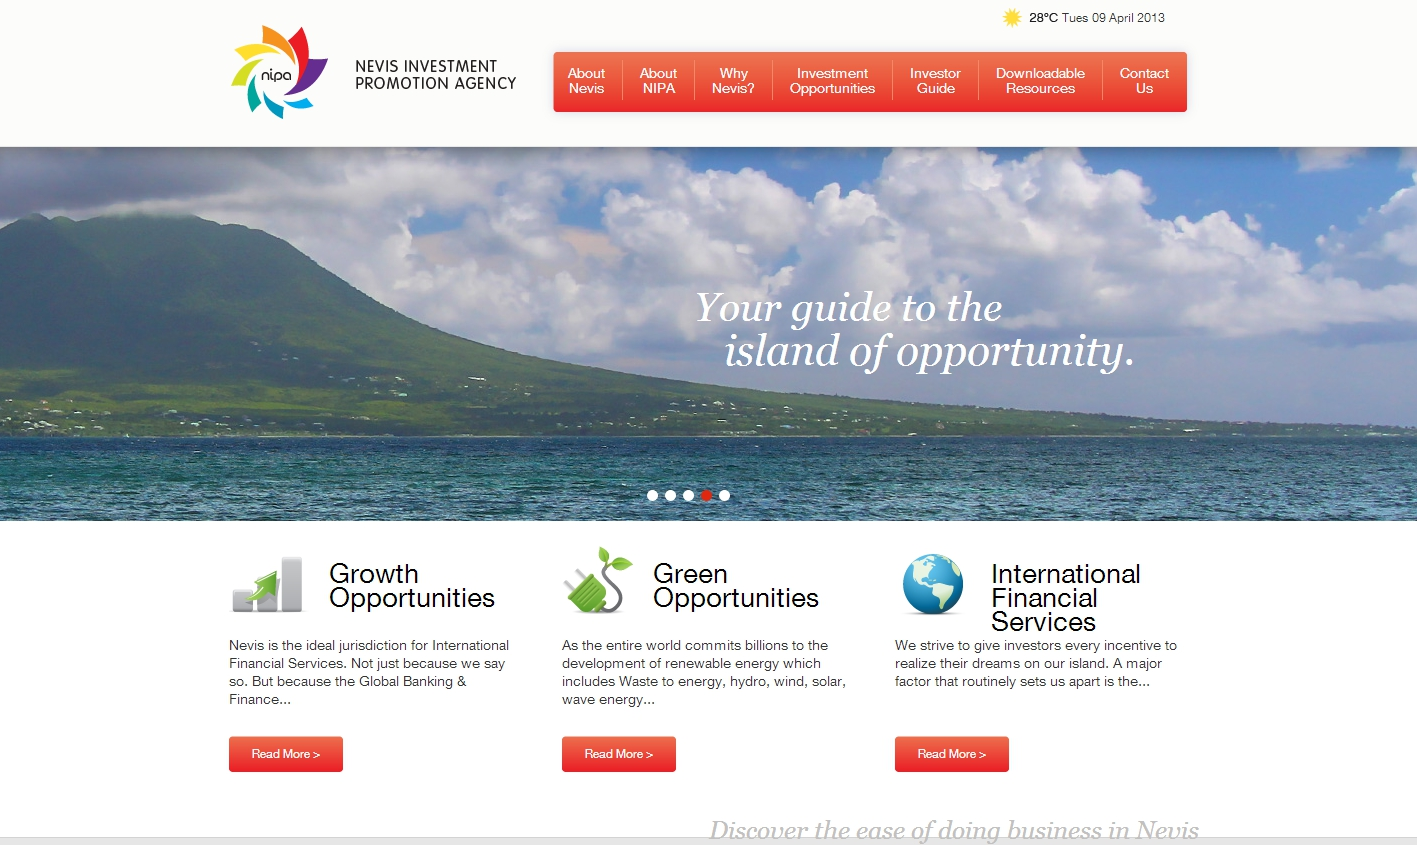 The home page of the new Nevis Investment Promotion Agency's website